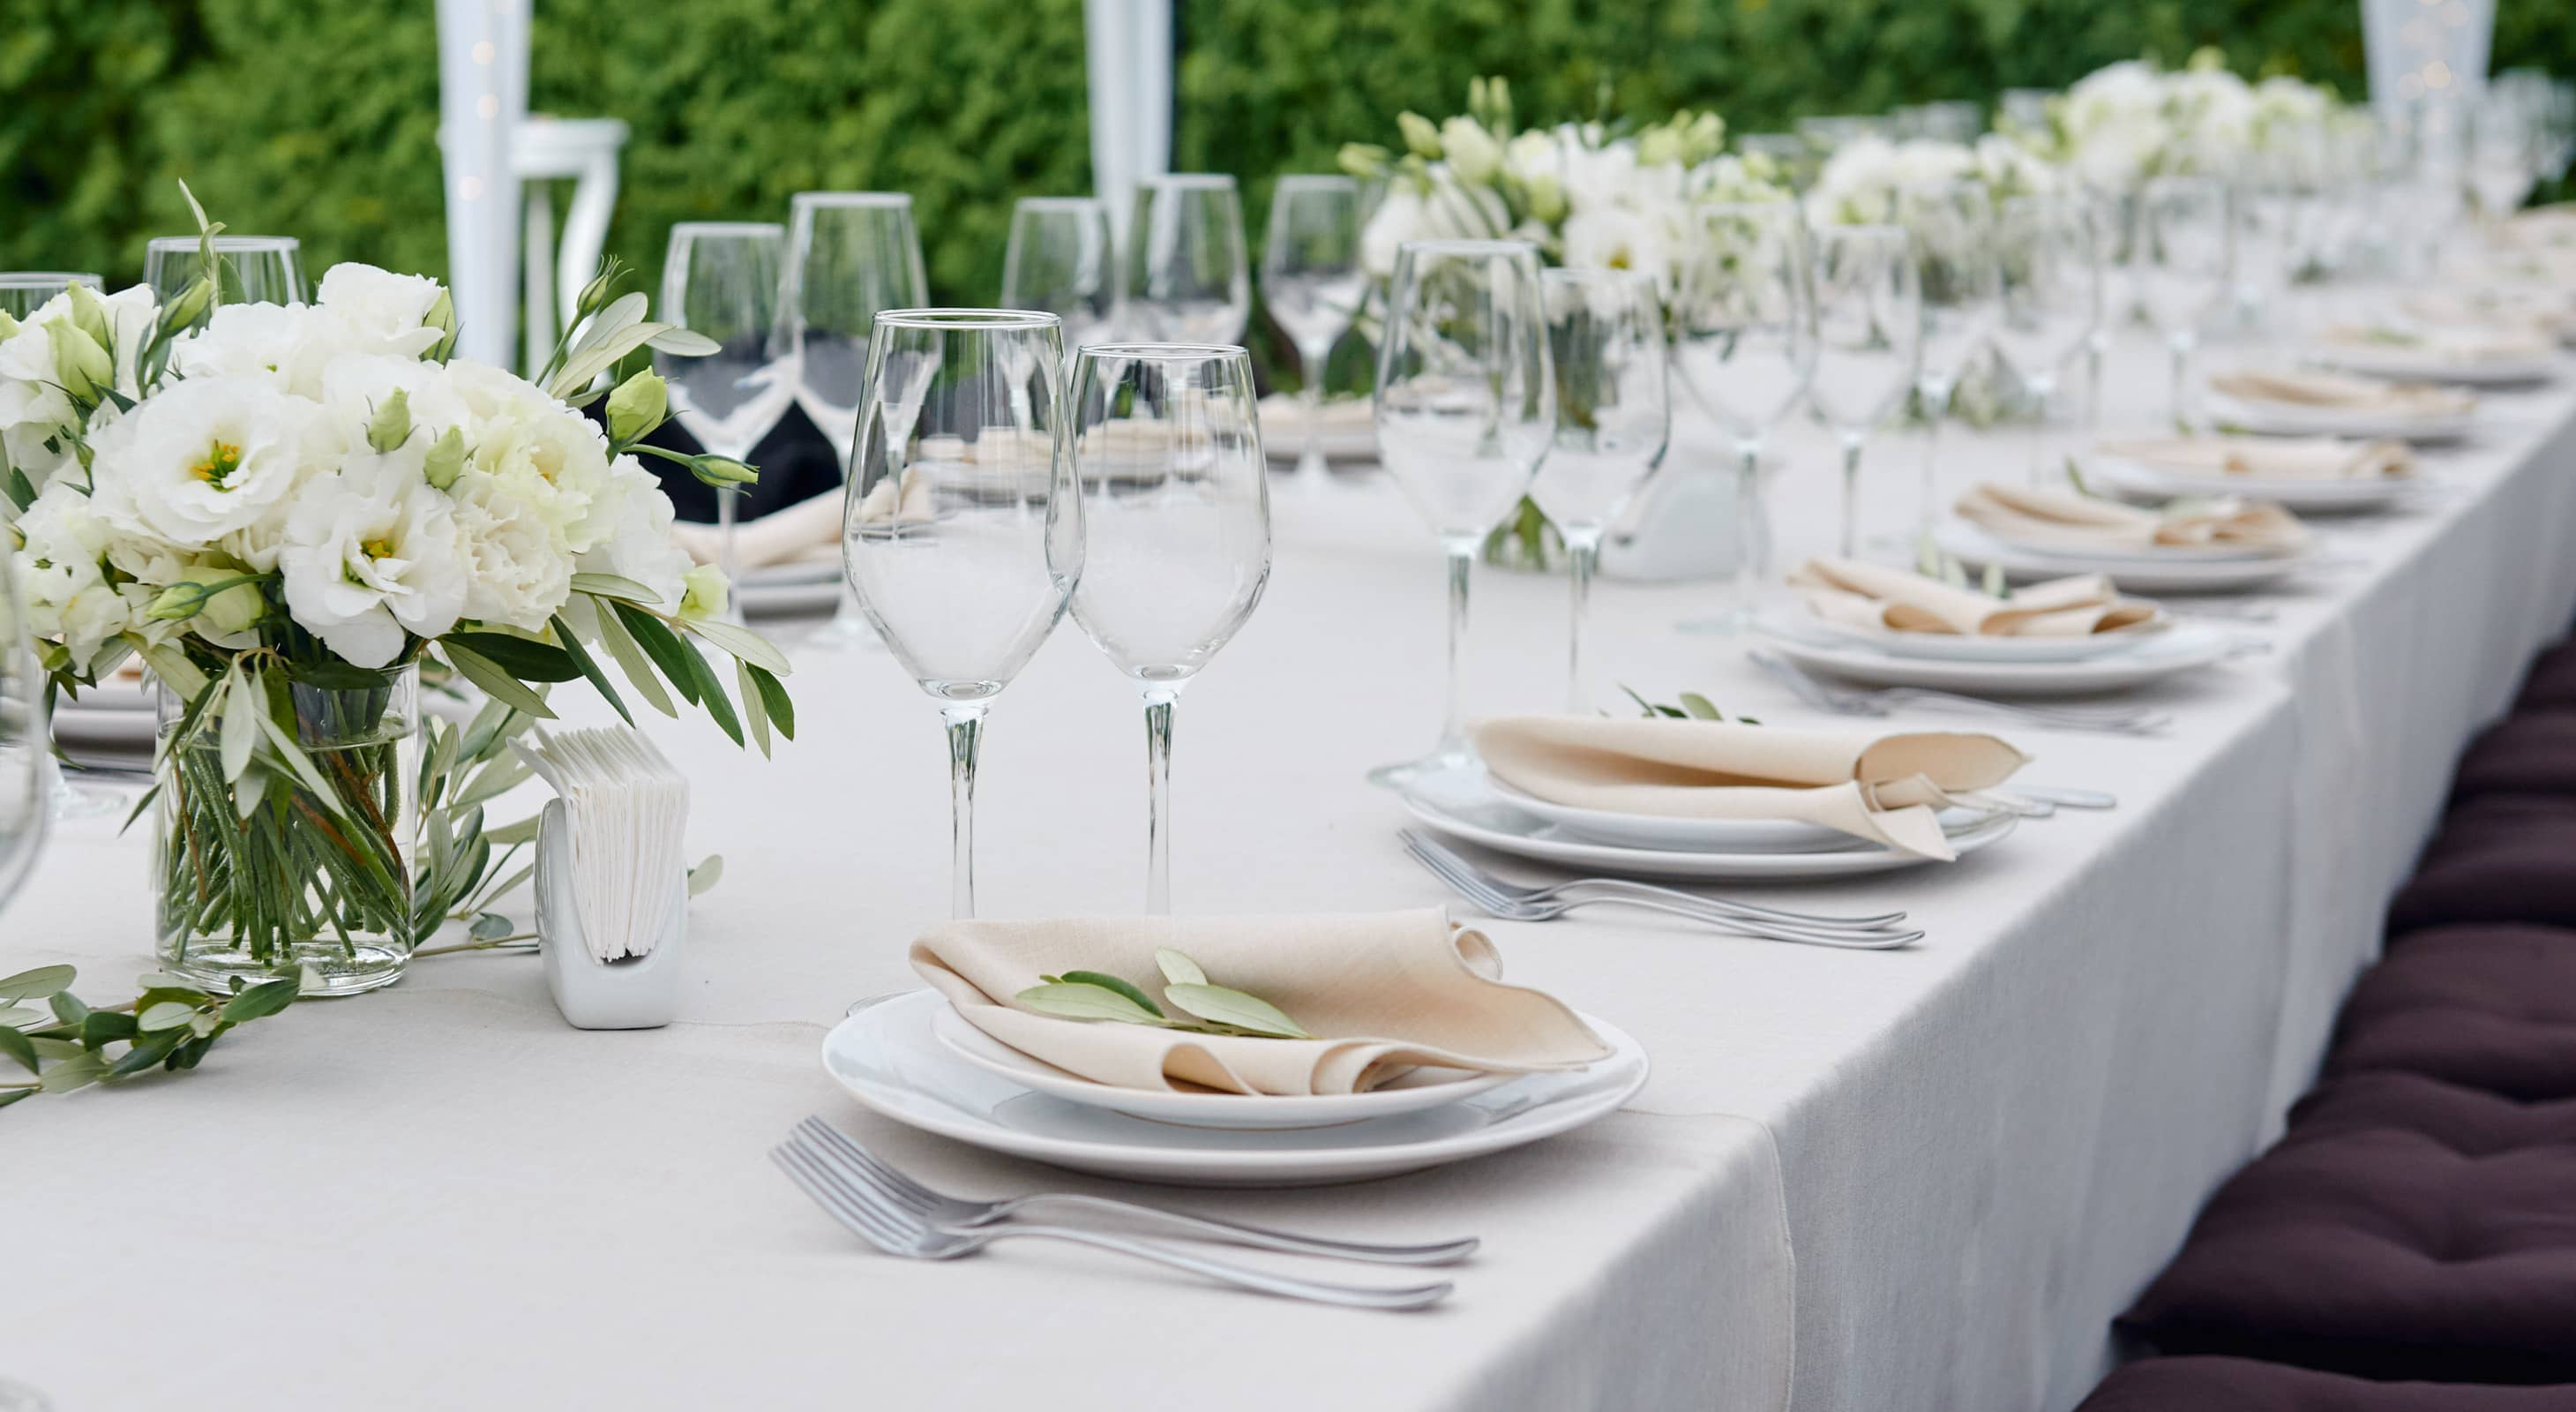 Event table set for dining